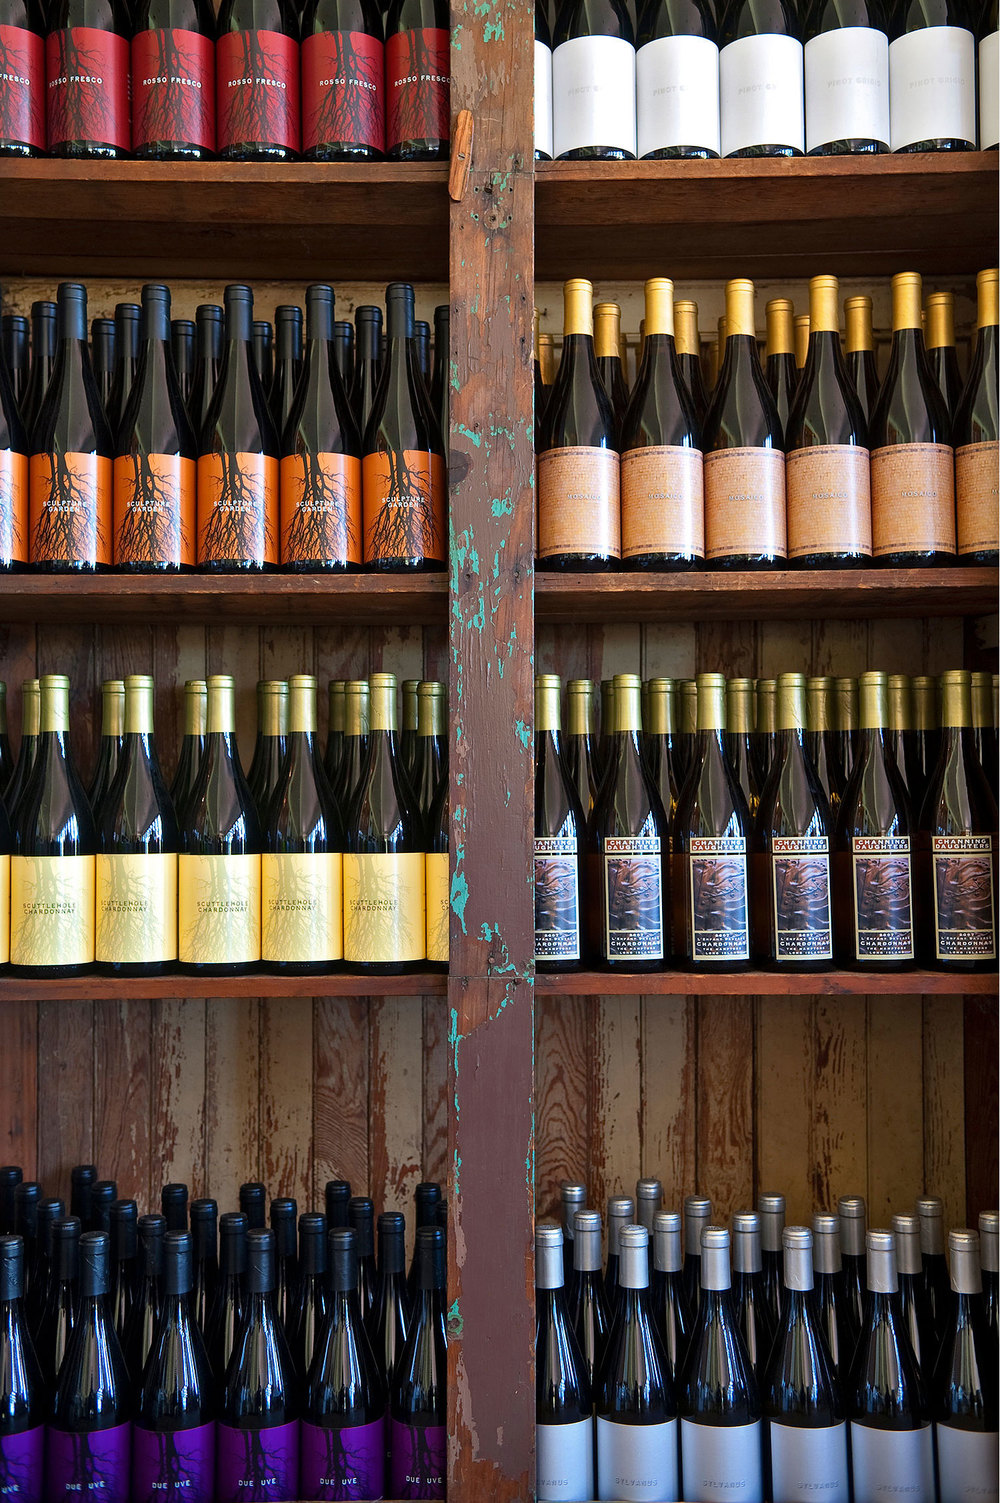 wine bottles in retail store